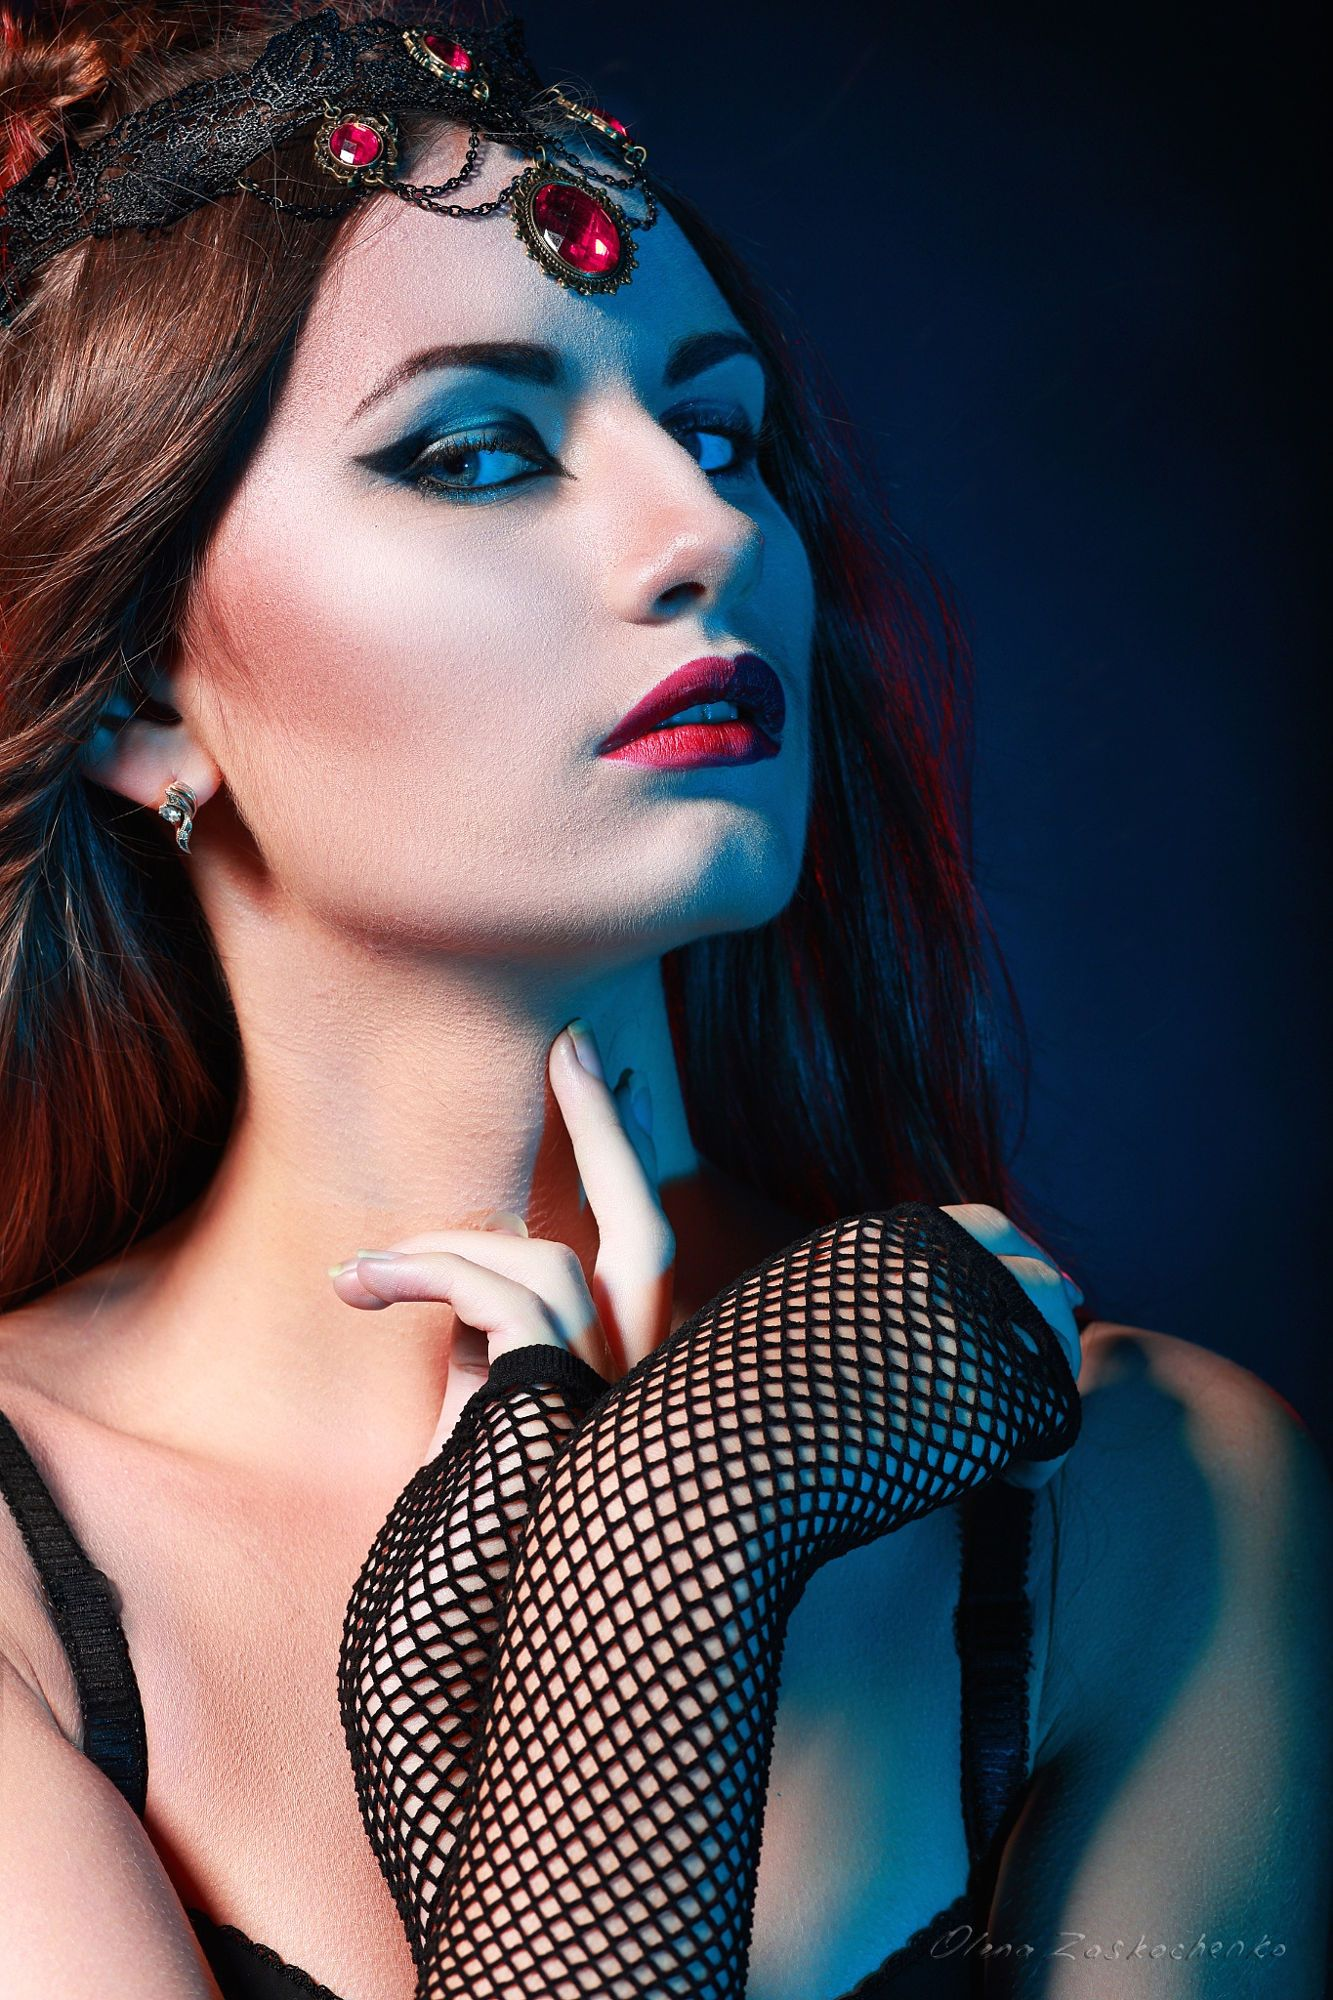 Portrait of mysterious woman perfect make up queen of the